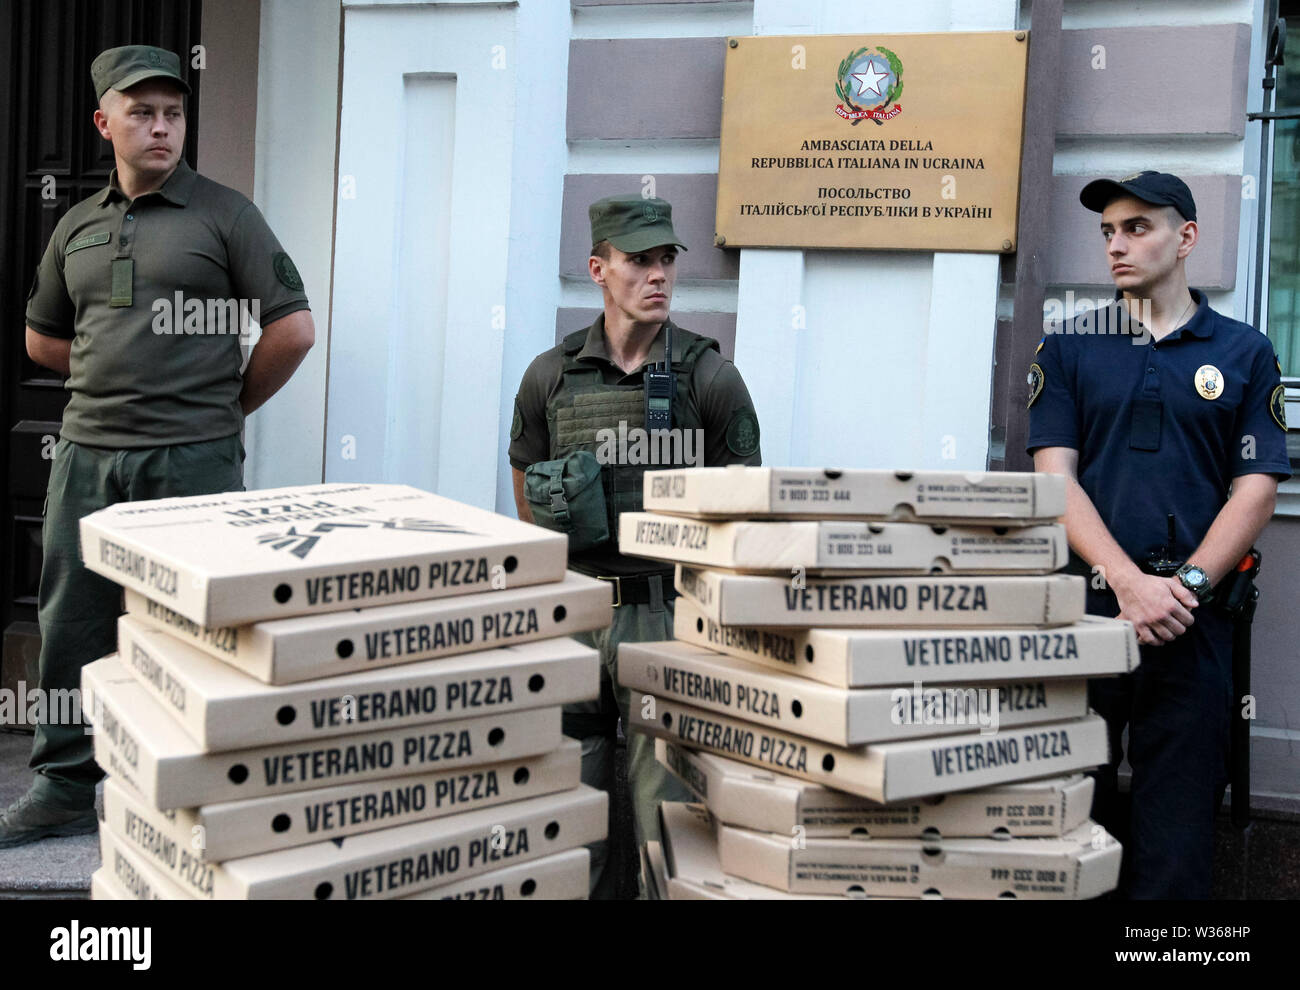 Kiev, Ukraine. 12th July, 2019. Police officers stand next to a barricade of pizza boxes placed by activists during a rally demanding the release of Ukrainian serviceman Vitaly Markiv, outside the Embassy of Italy in Kiev, Ukraine. An Italian court has sentenced Ukrainian former National Guard commander, Vitaliy Markiv to 24 years in prison for the murder of a photographer Andrea Rocchelli and his Russian translator and assistant Andrei Mironov in the early days of the war conflict in the East of Ukraine in May 2014, between government forces and pro-Russian separatists. Credit: SOPA Images Li - Stock Image